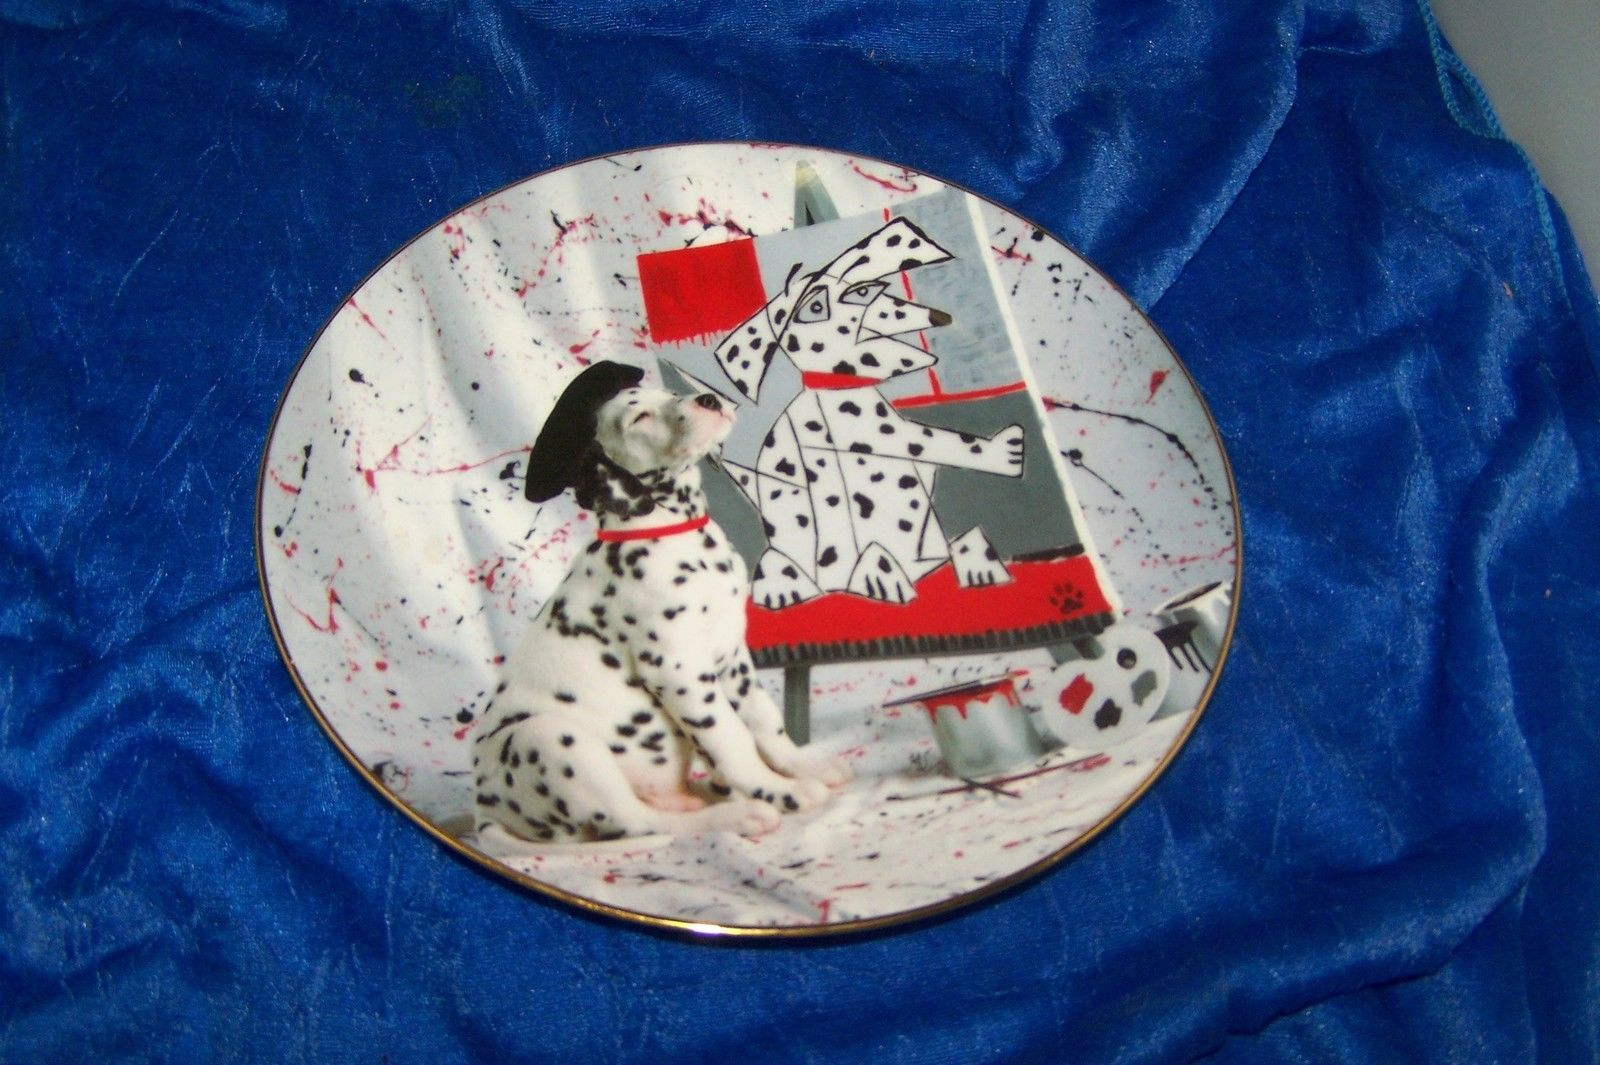 The Master From The Comical Dalmatians Collectible Plate Plate #4398 K - $10.88